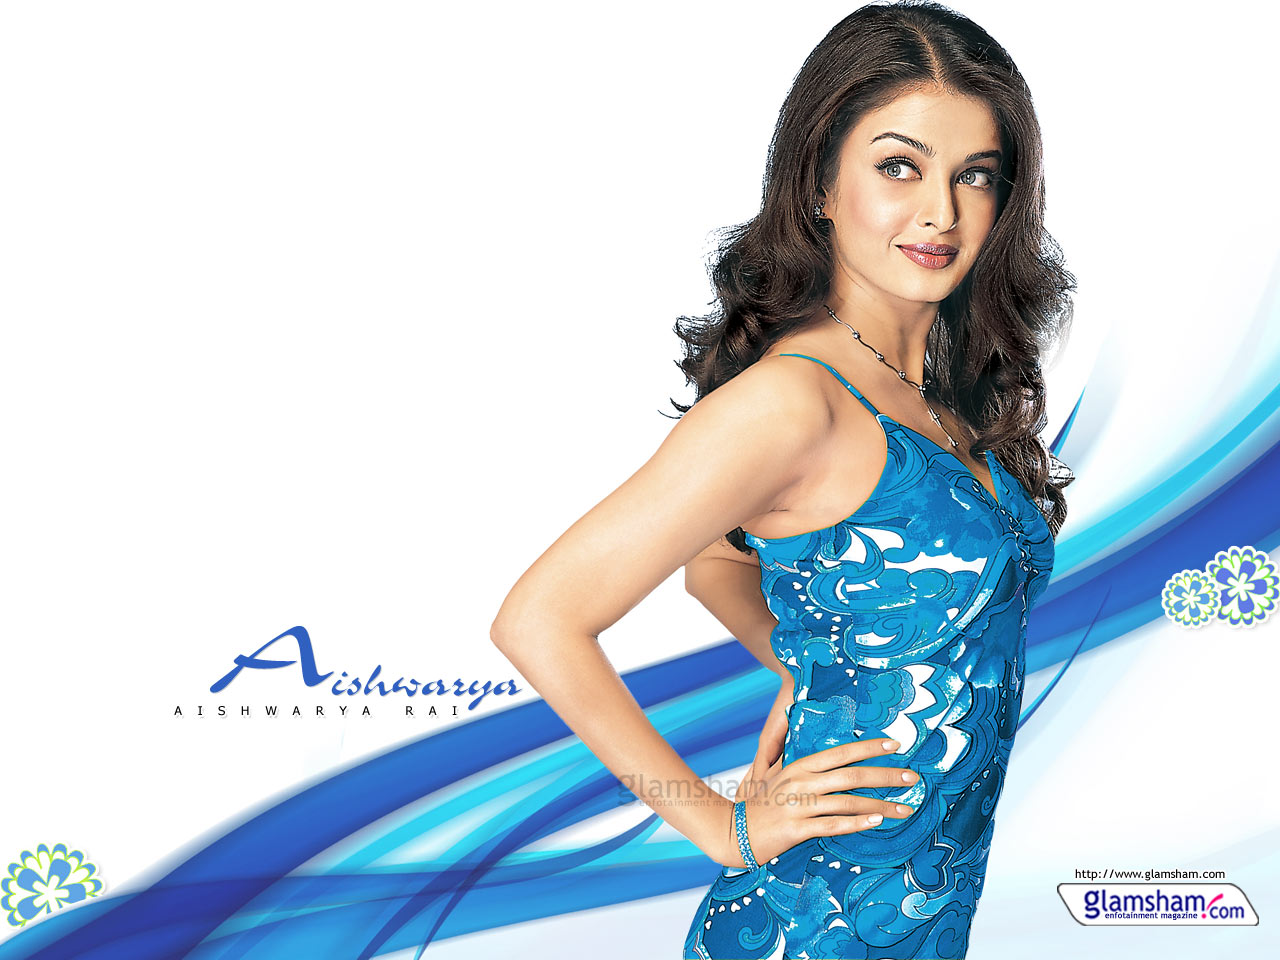 Aishwarya Rai Wallpapers High Quality  Download Free 1280x960